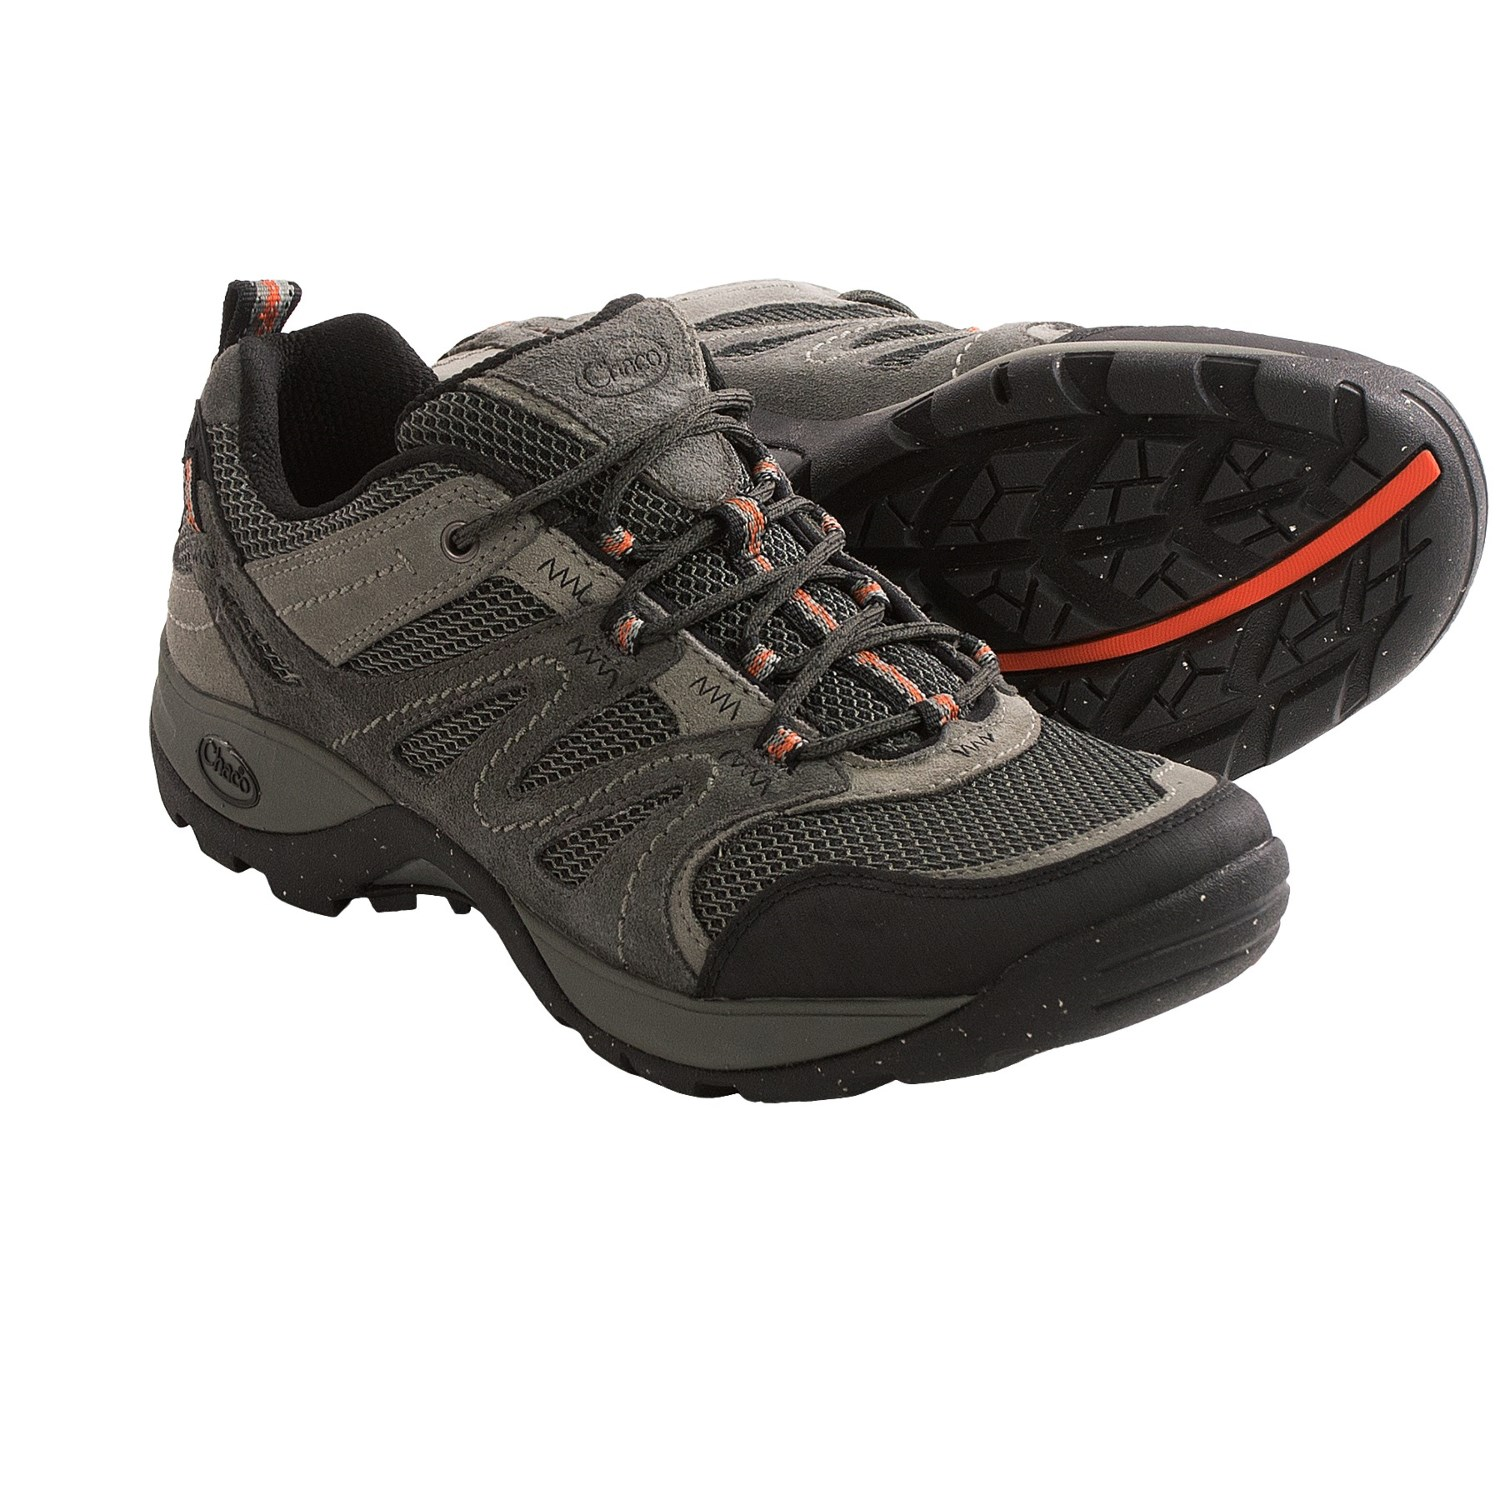 Chaco Men S Hiking Shoes